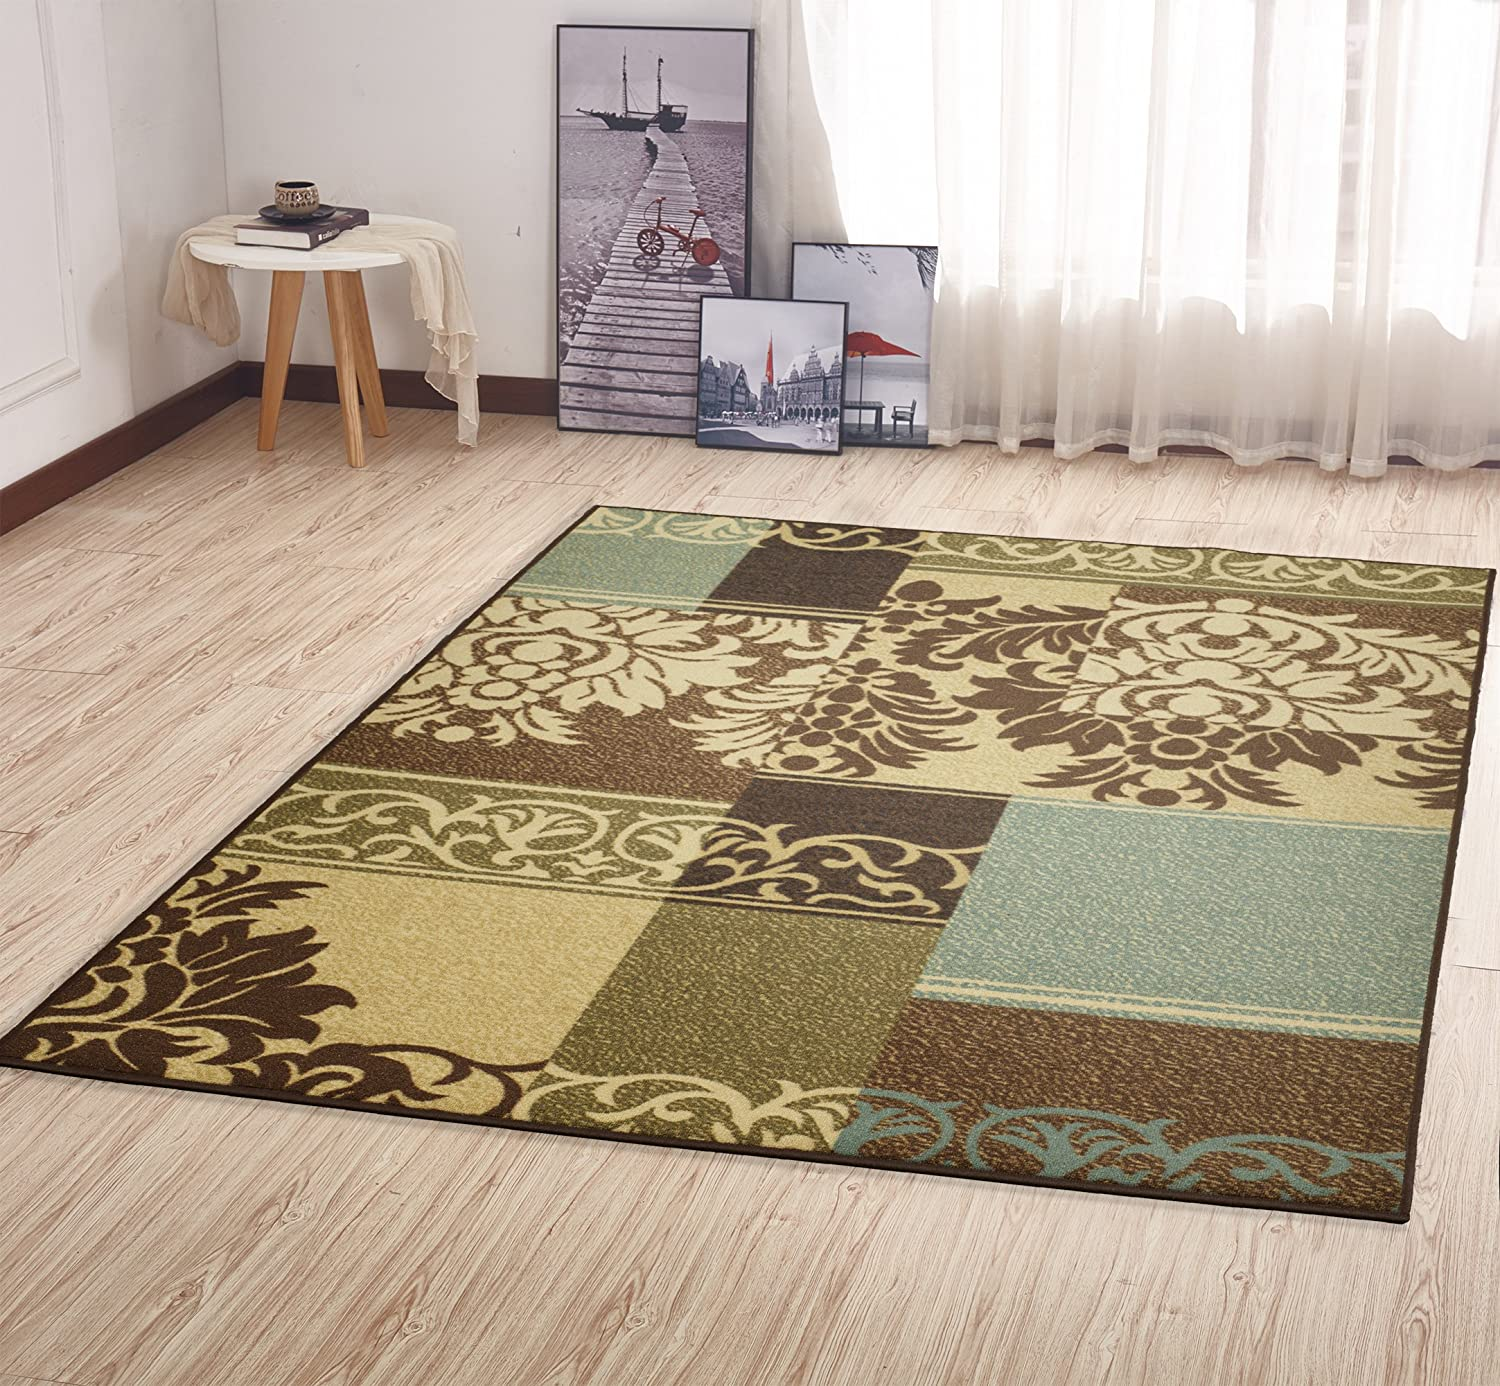 Brown 2/'7 X 9/'10/'/' OTH2292-3X10 27 X 910 Ottomanson Ottohome Collection Contemporary Damask Design Non-Skid Rubber Backing Hallway Runner Rug